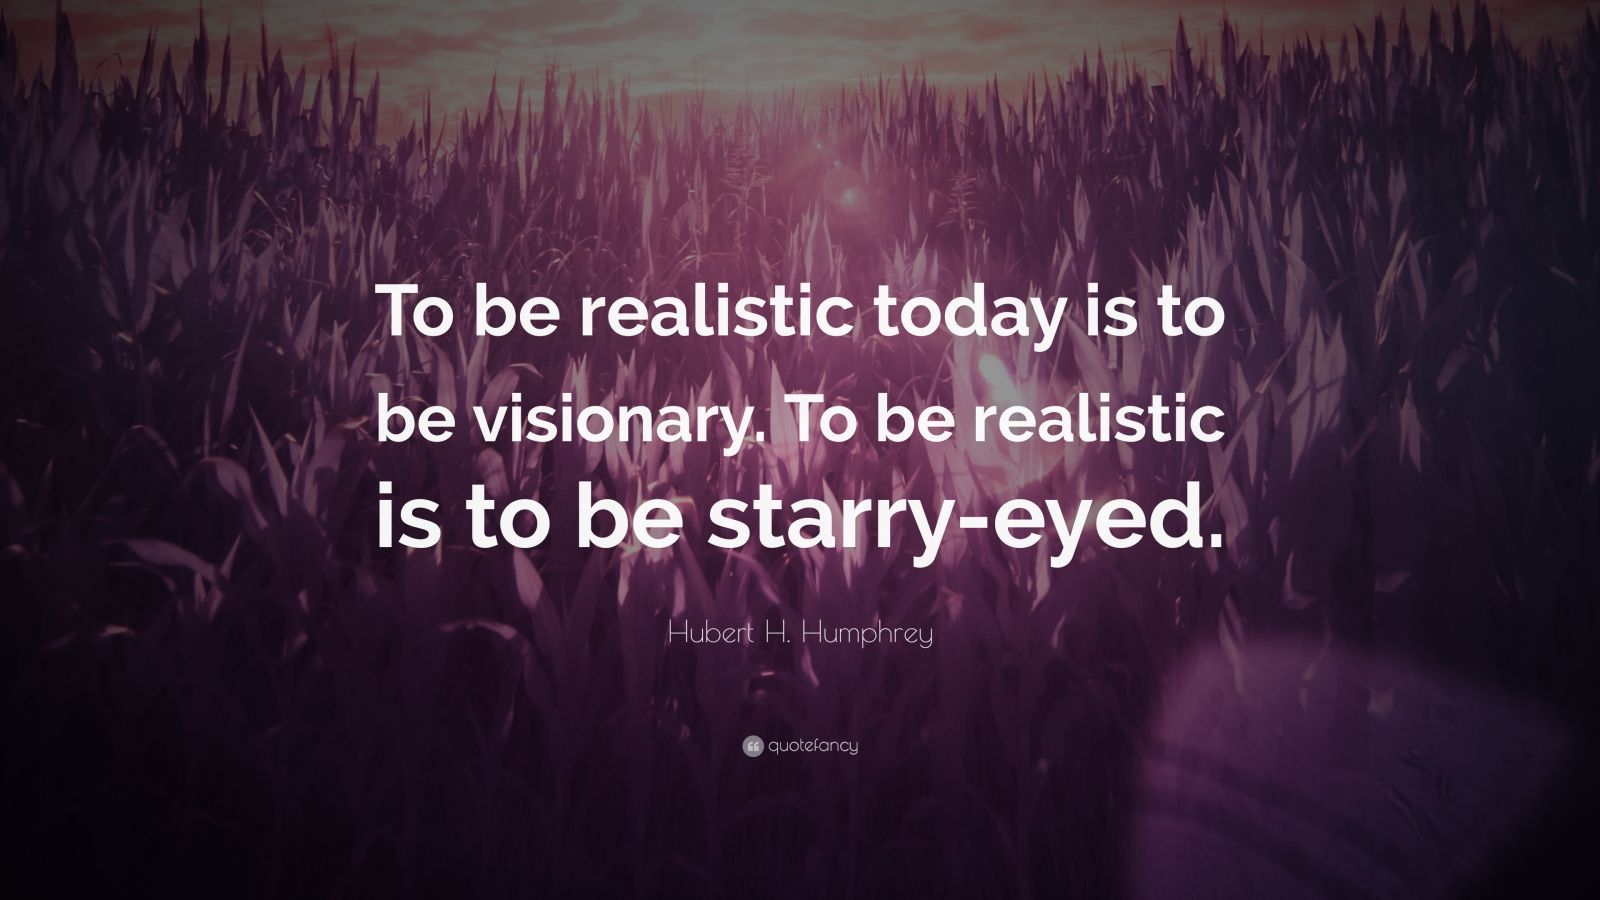 """Hubert H. Humphrey Quote: """"To be realistic today is to be visionary. To be realistic is to be starry-eyed."""""""